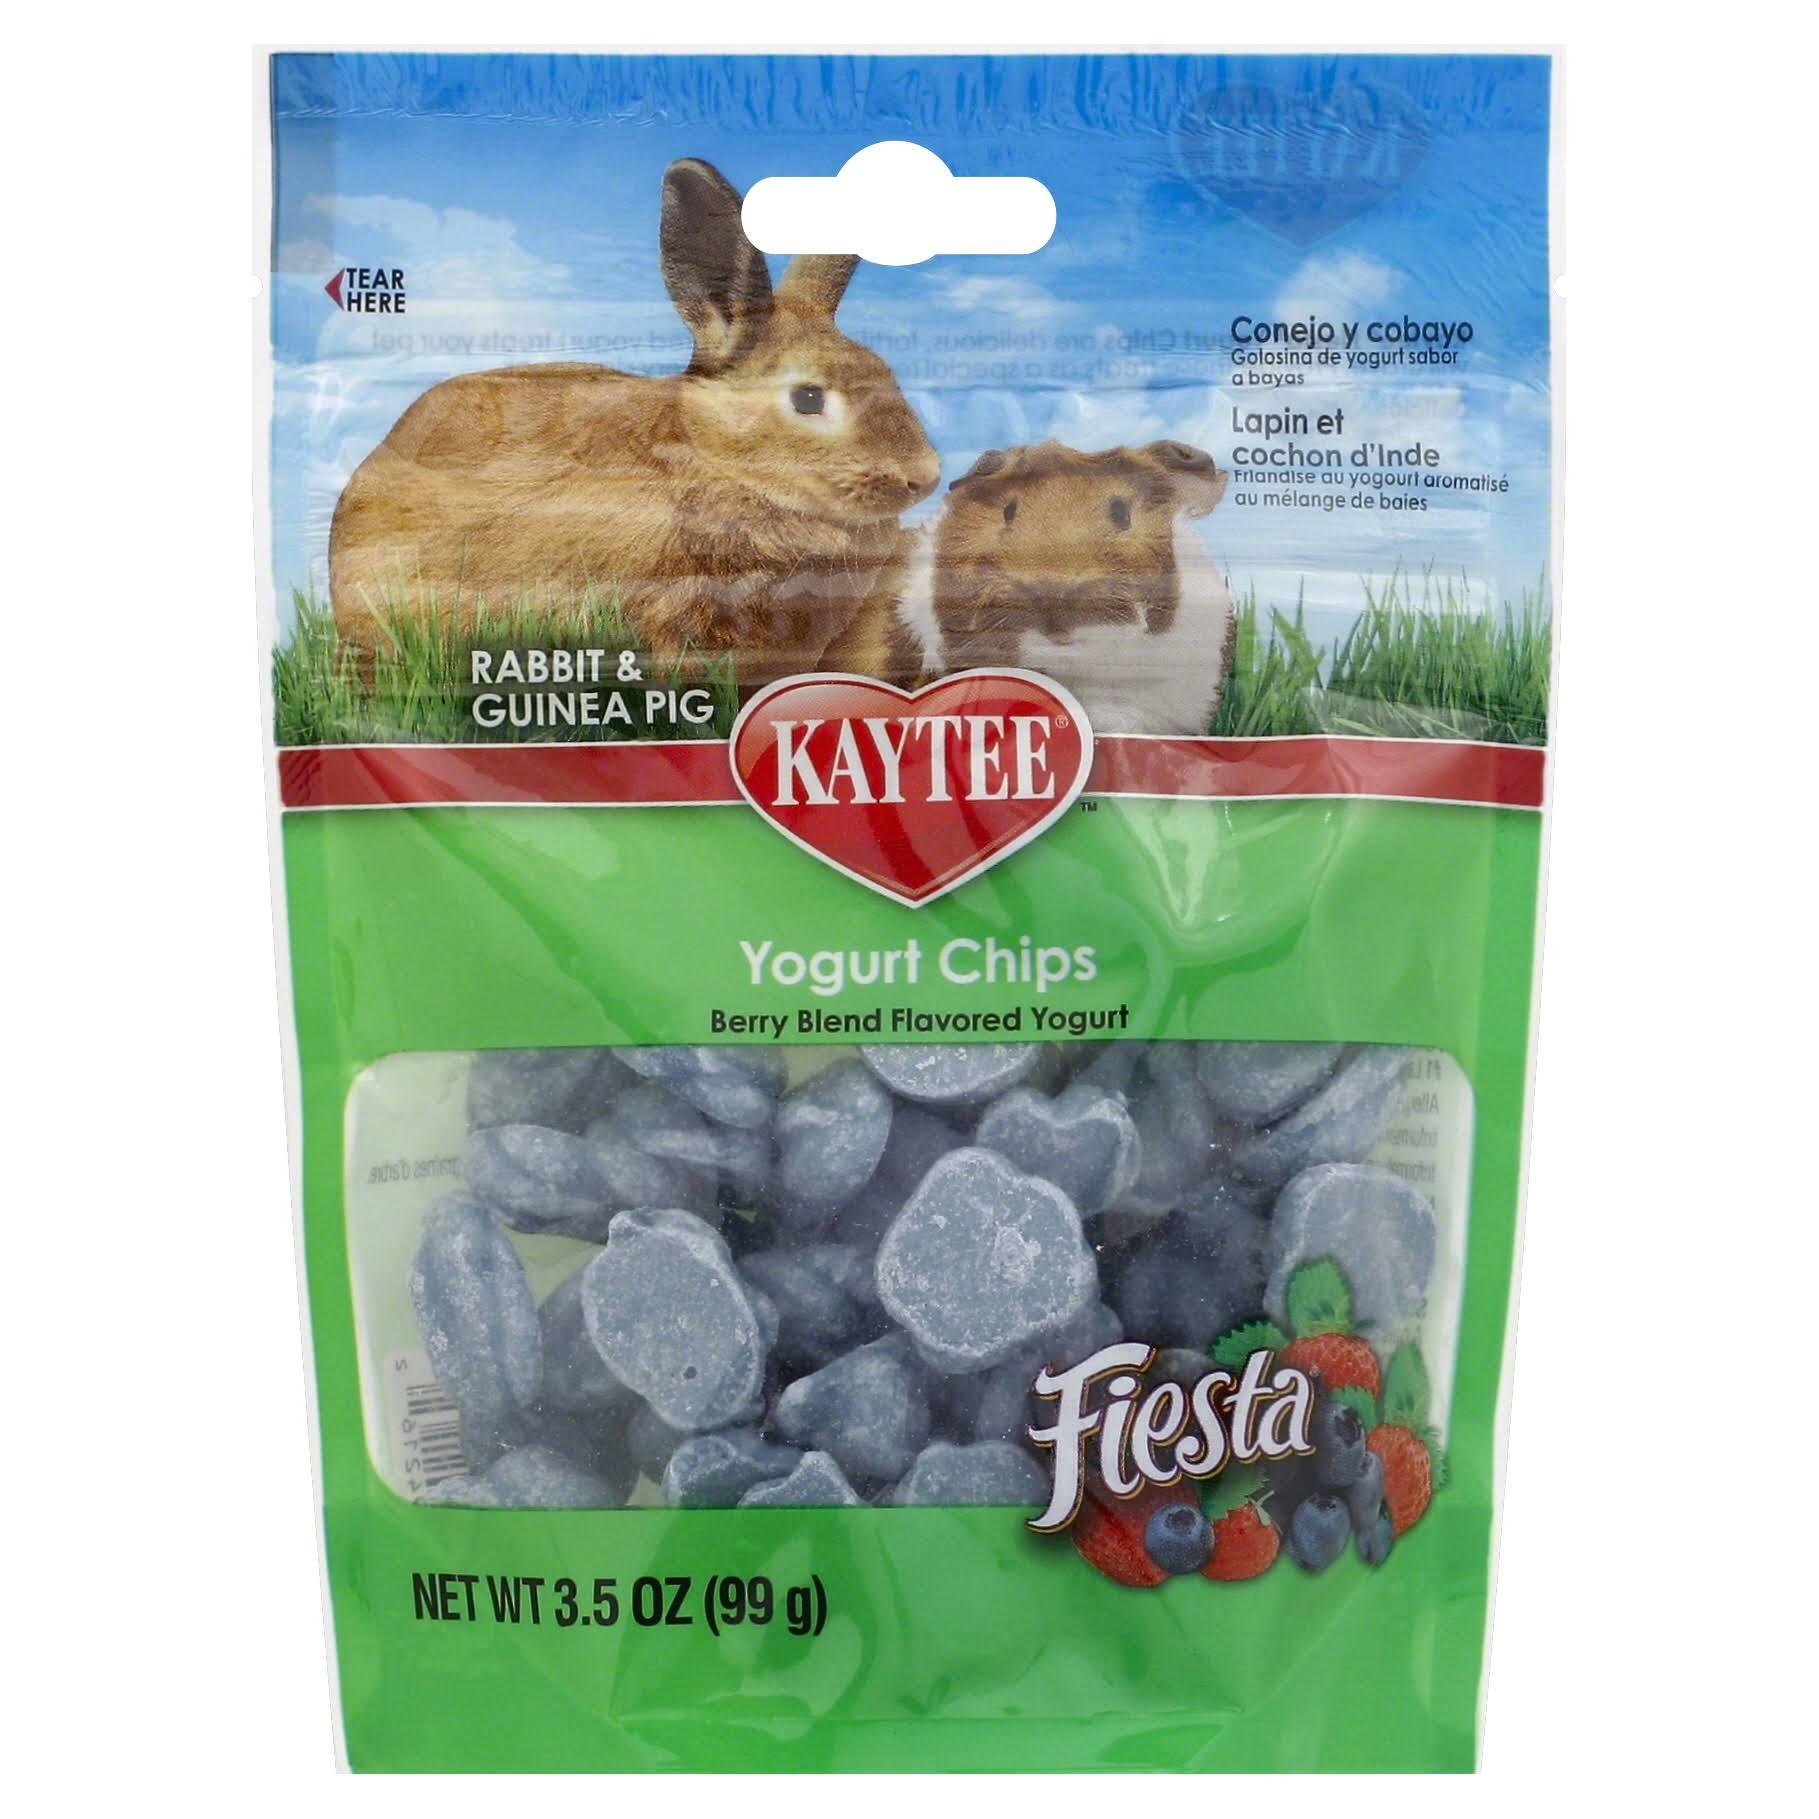 Kaytee Rabbit and Guinea Pig Fiesta Mixed Berry Yogurt Chips - 3.5oz